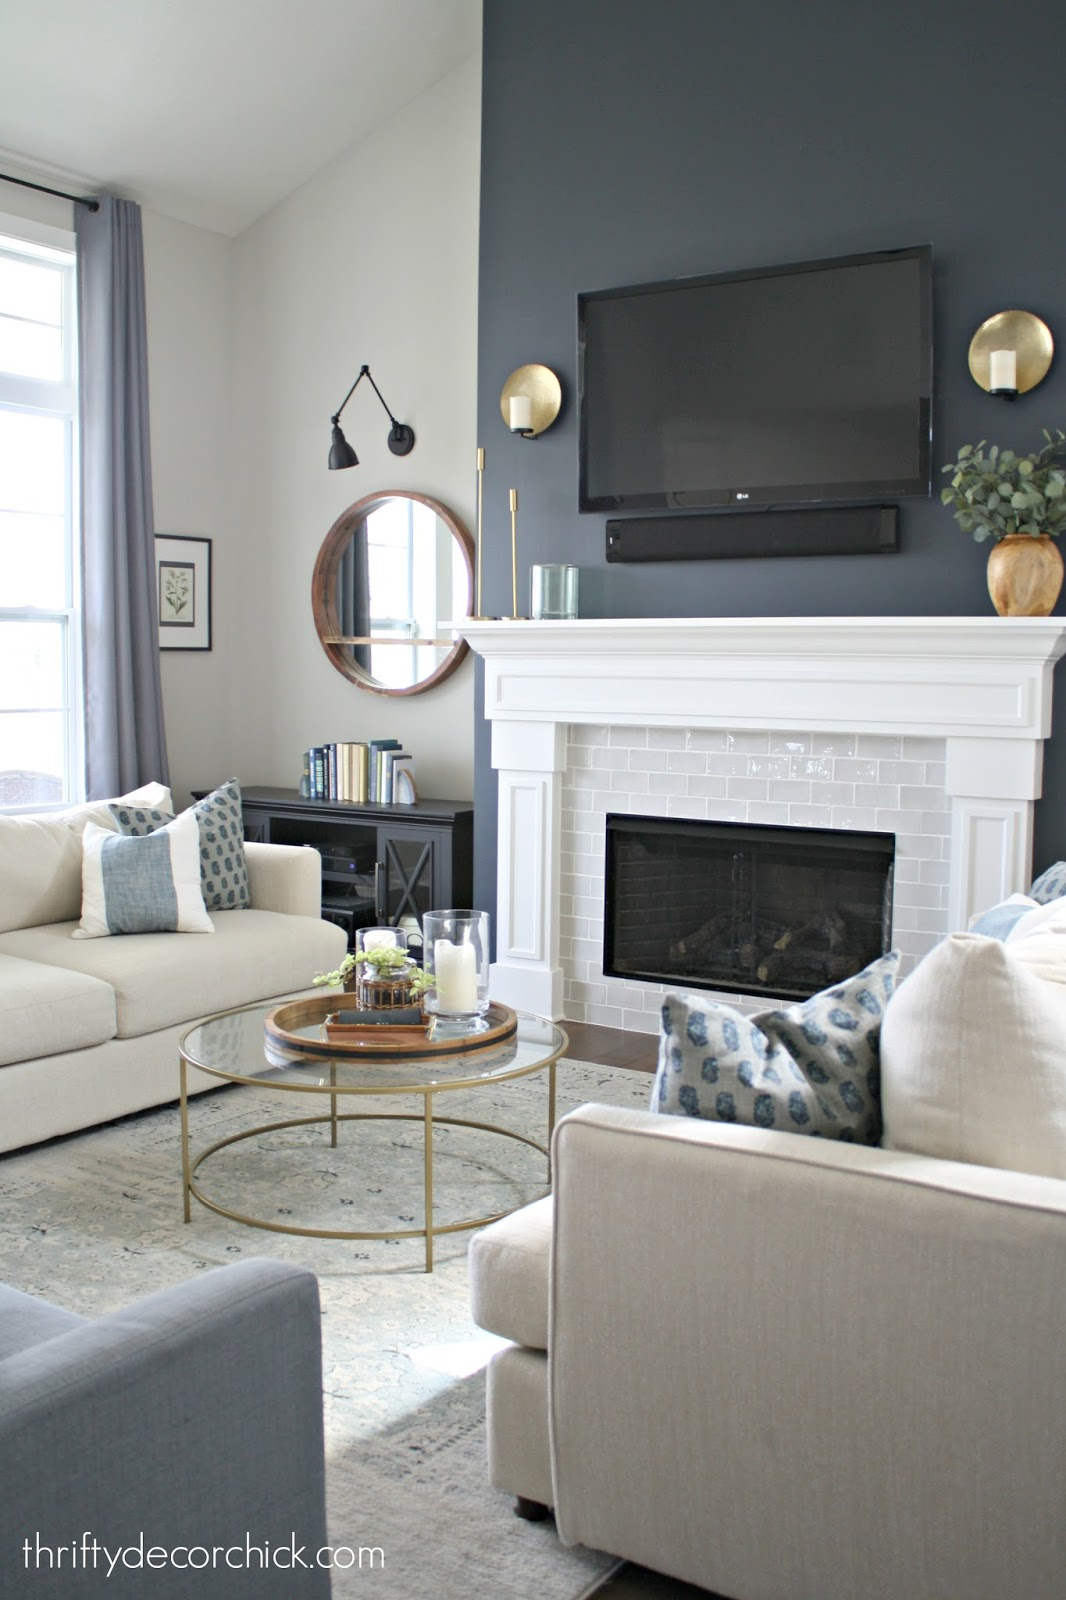 Dark wall, white fireplace surround, gray tile